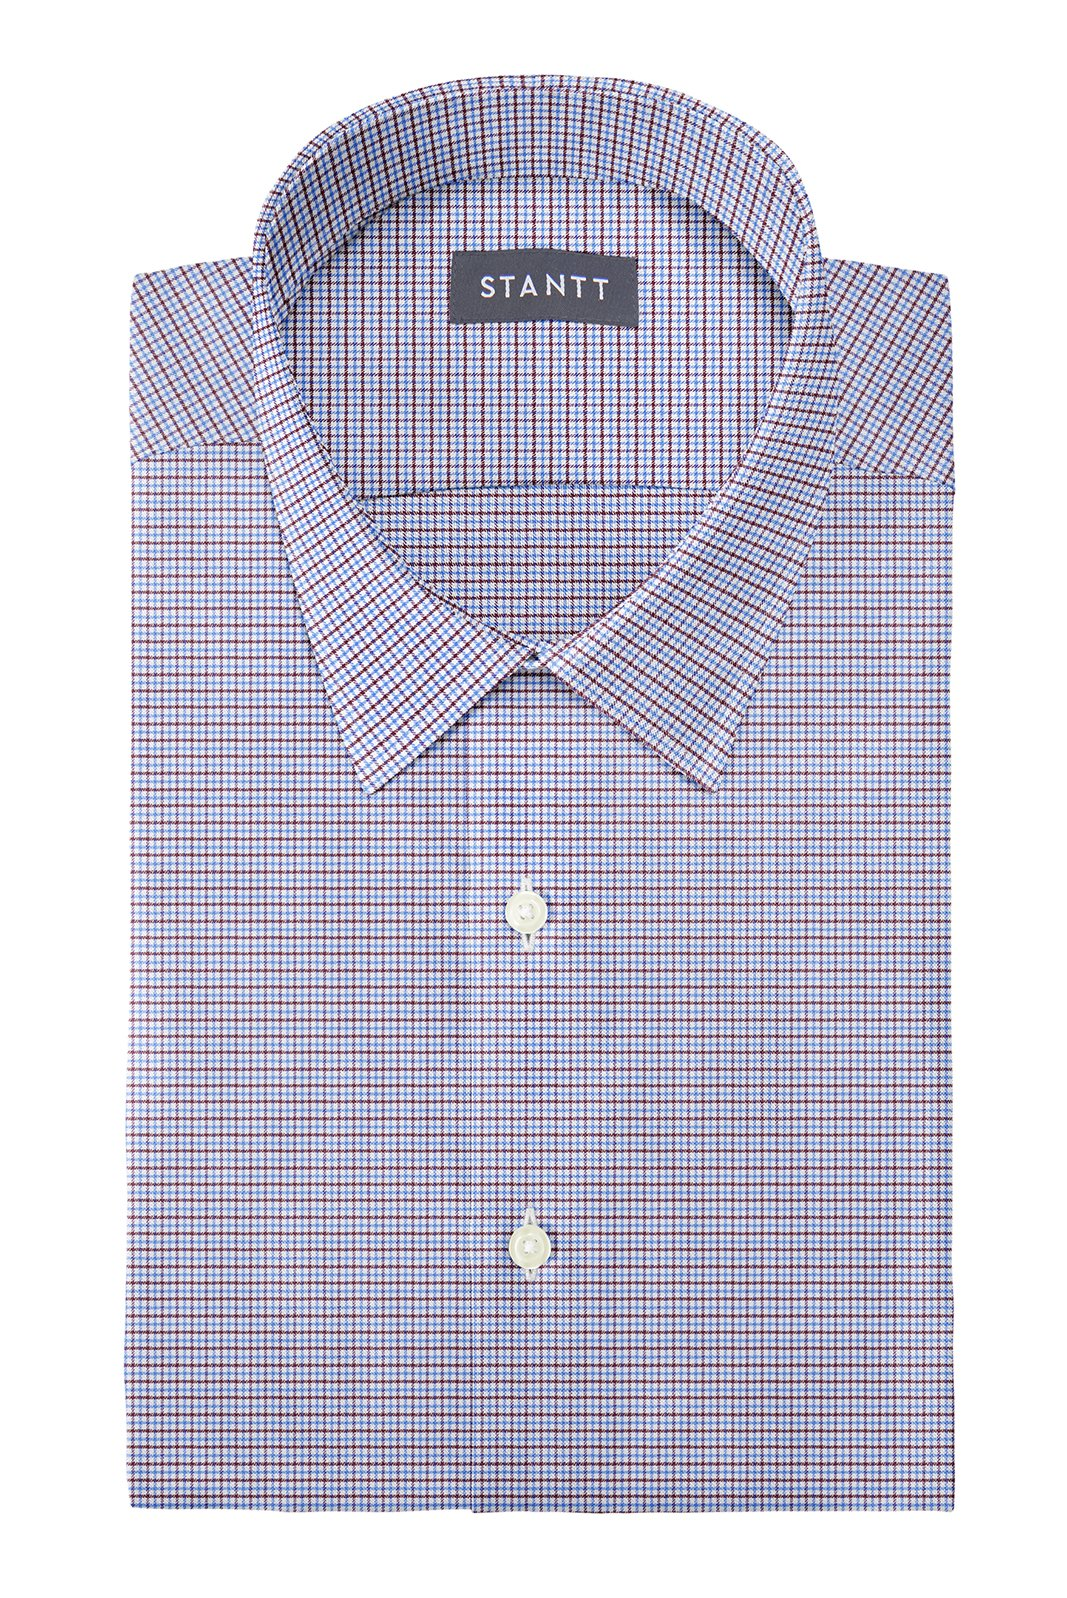 Performance Blue and Brown Mini Tattersall: Semi-Spread Collar, Barrel Cuff